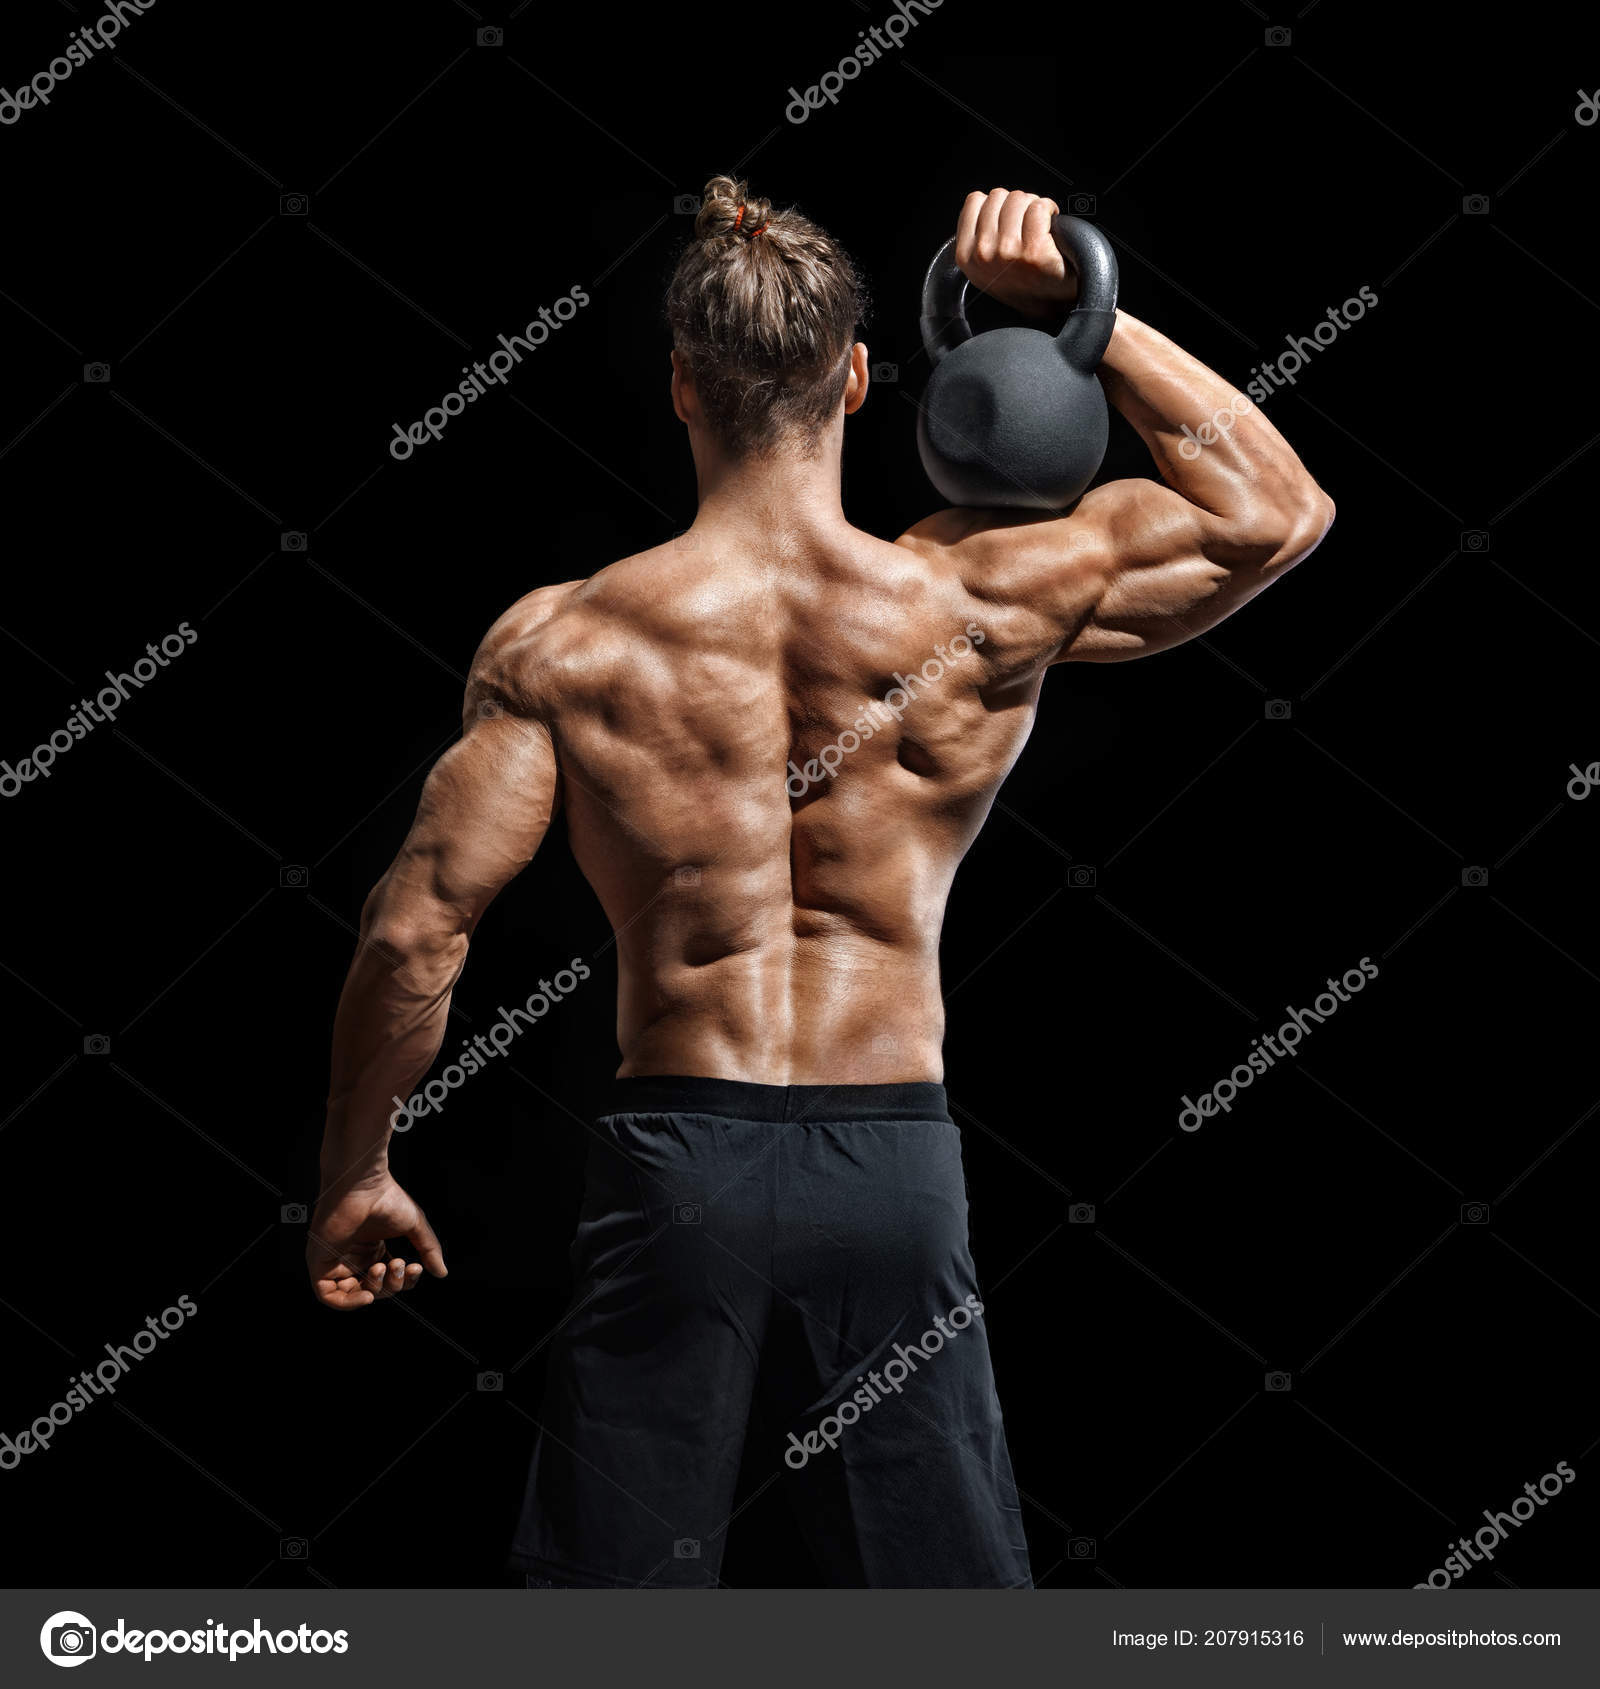 Kettlebell Bodybuilding Young Bodybuilder Doing Exercise Kettlebell Rear View Muscular